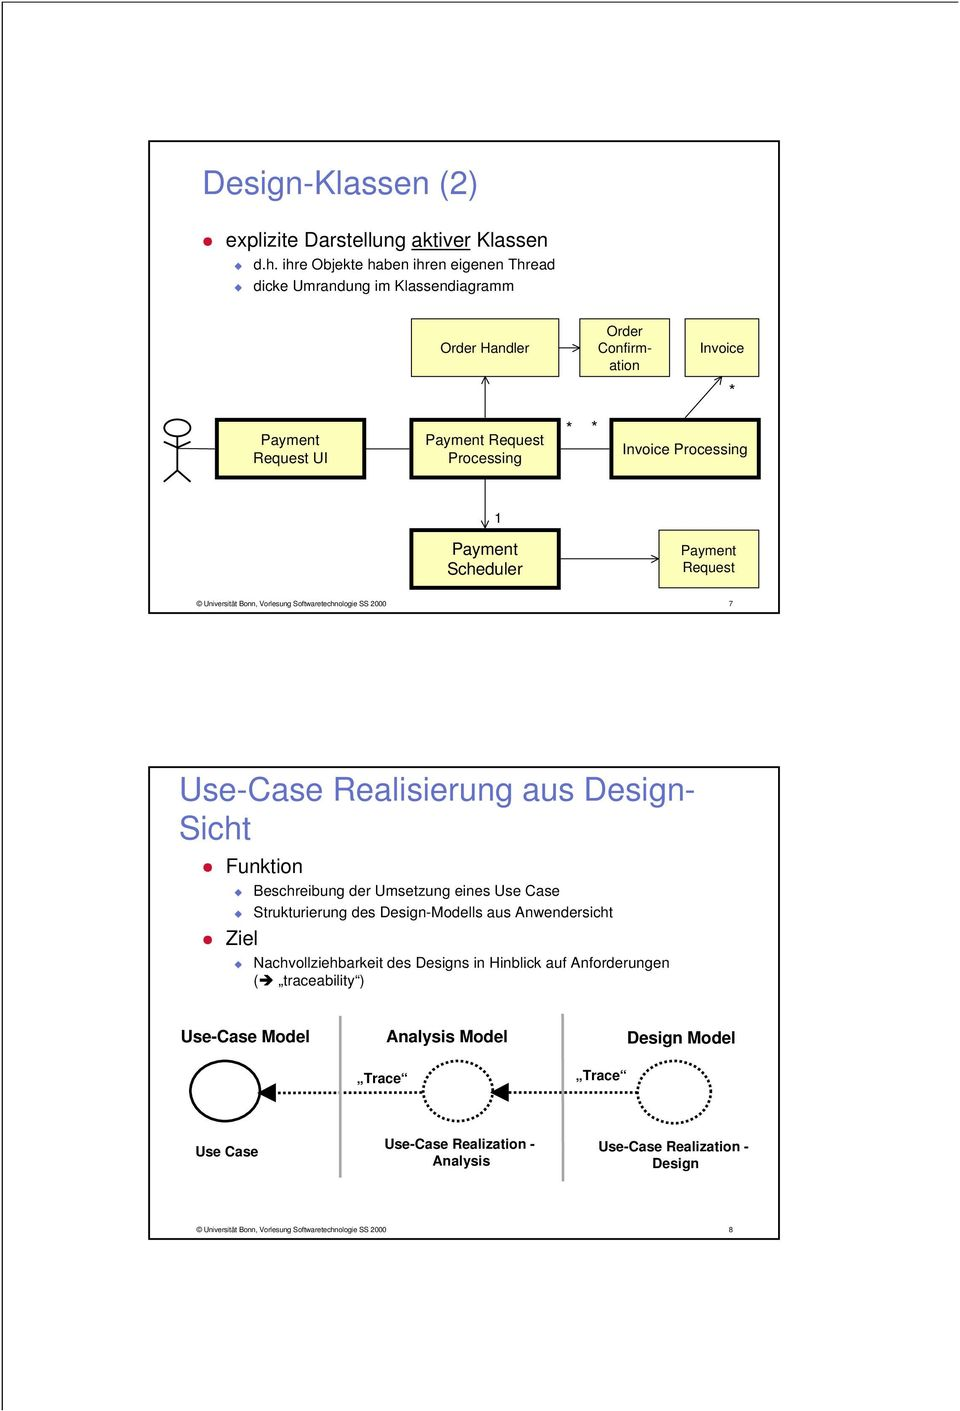 Processing 1 Scheduler Request Universität Bonn, Vorlesung Softwaretechnologie SS 2000 7 Use-Case Realisierung aus - Sicht Funktion Ziel Beschreibung der Umsetzung